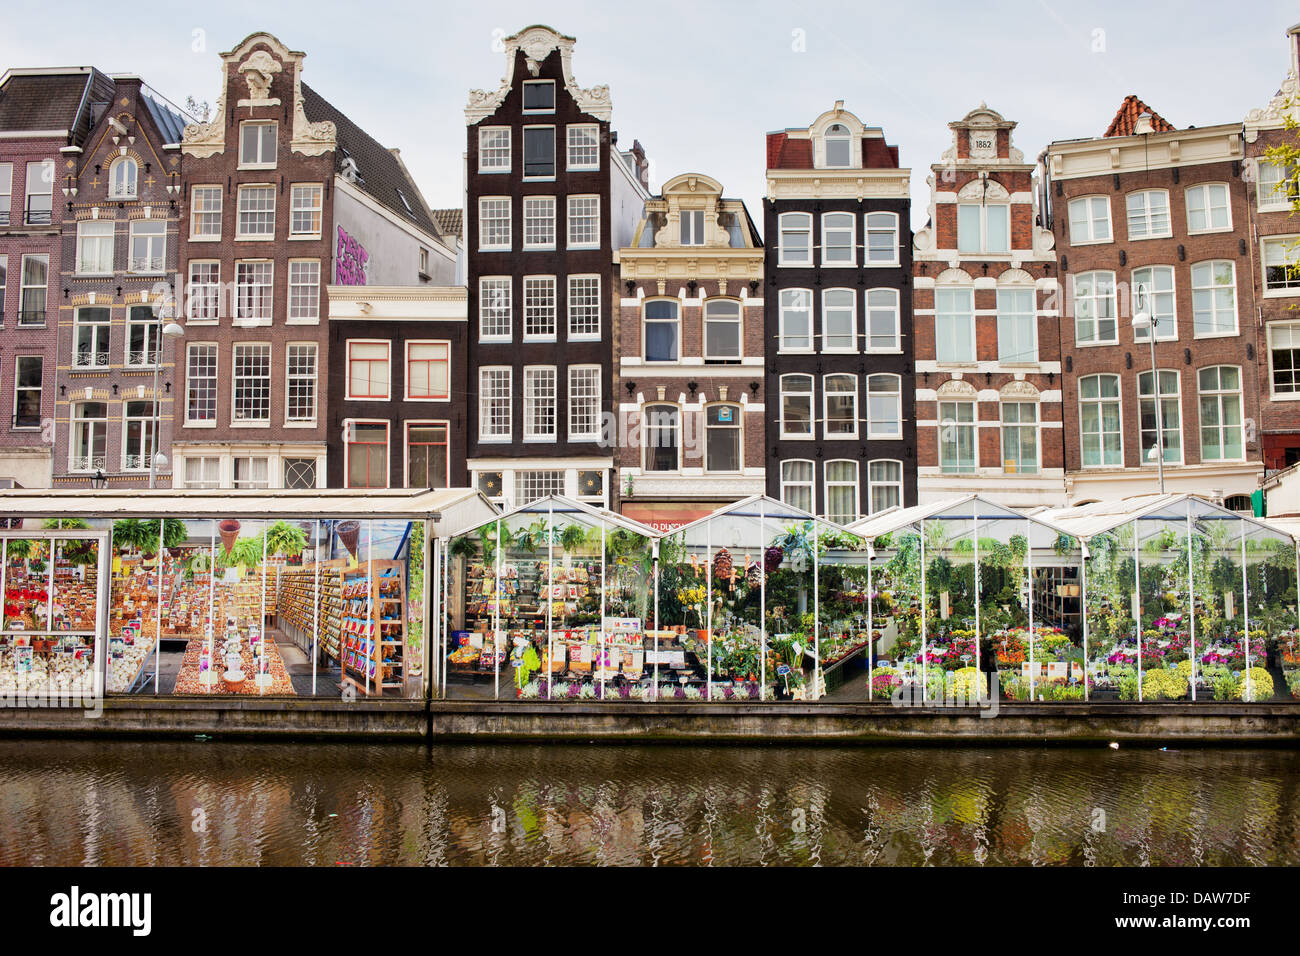 Floating Flower Market along Singel canal and Dutch style historic houses in Amsterdam, Netherlands, North Holland. - Stock Image